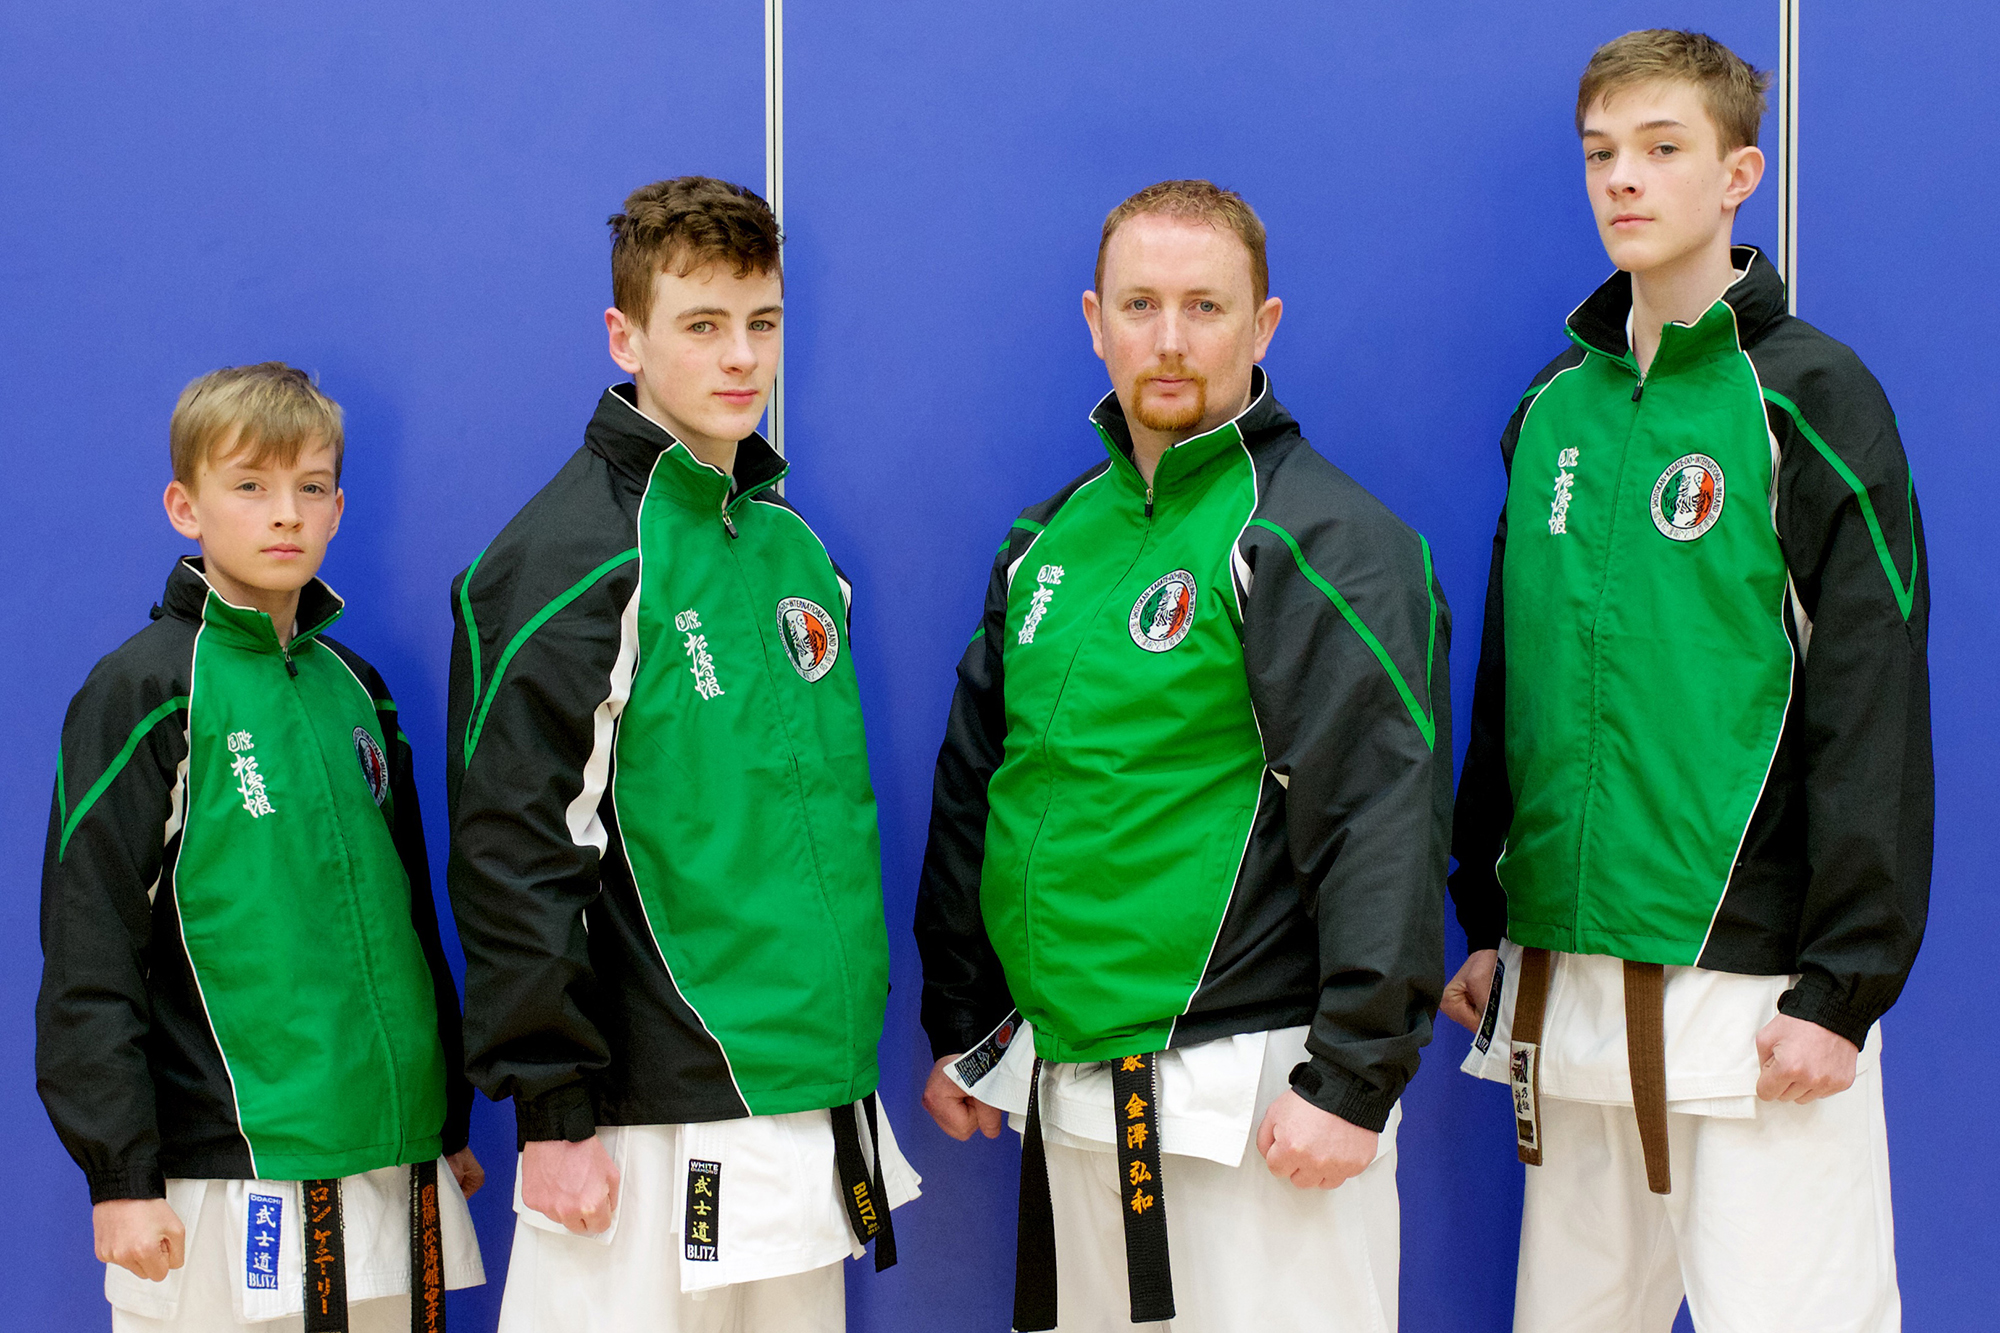 Bushido Karate Club members Joe O Brien, Oisin O Sullivan, Tom O Brien and Sensei Aaron Kenneally selected to represent SKIF Ireland at the SKIF European Championships in Czech Republic - May 2017